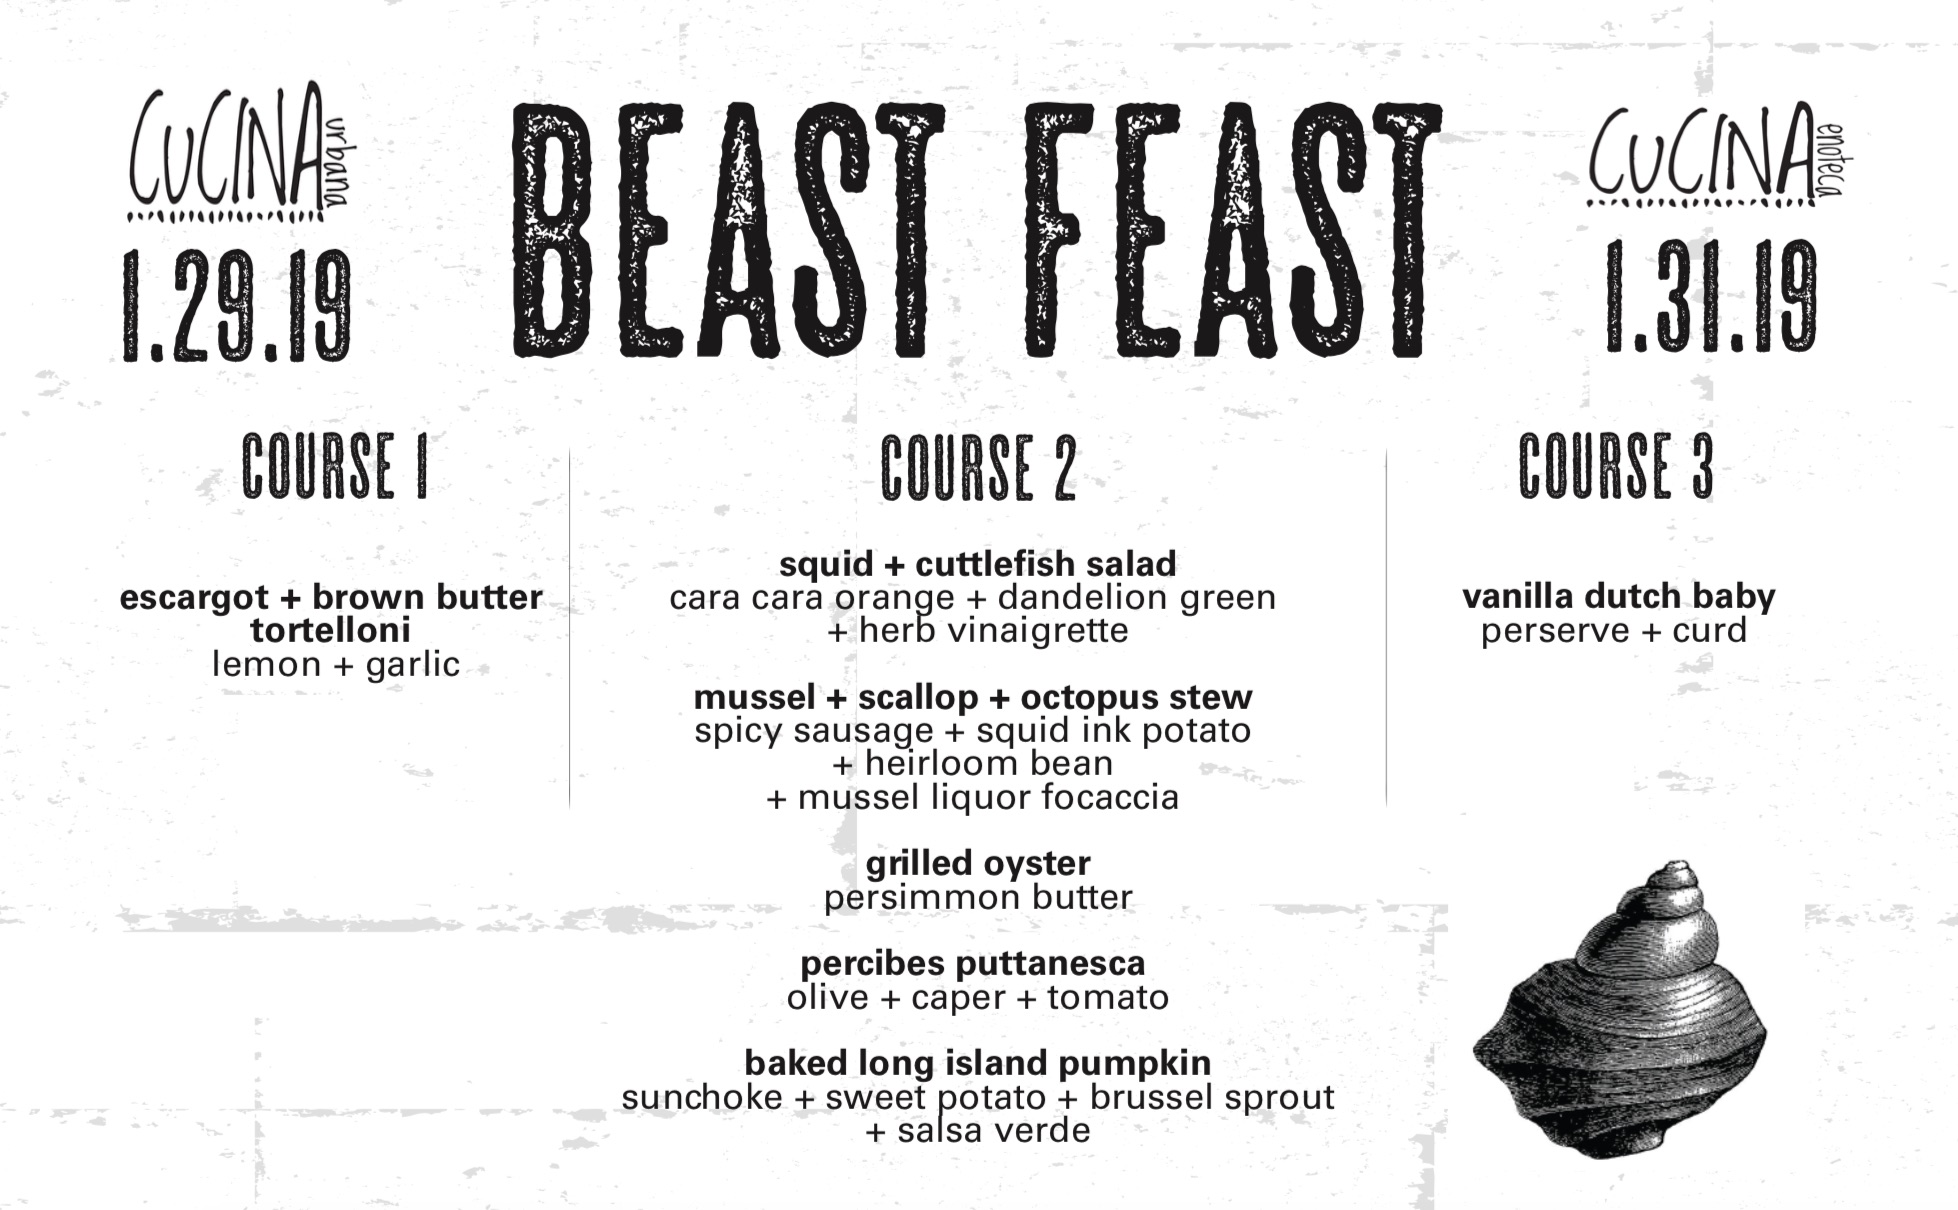 Cucina Enoteca Menu Beast Feast Mollusk Great Taste Events